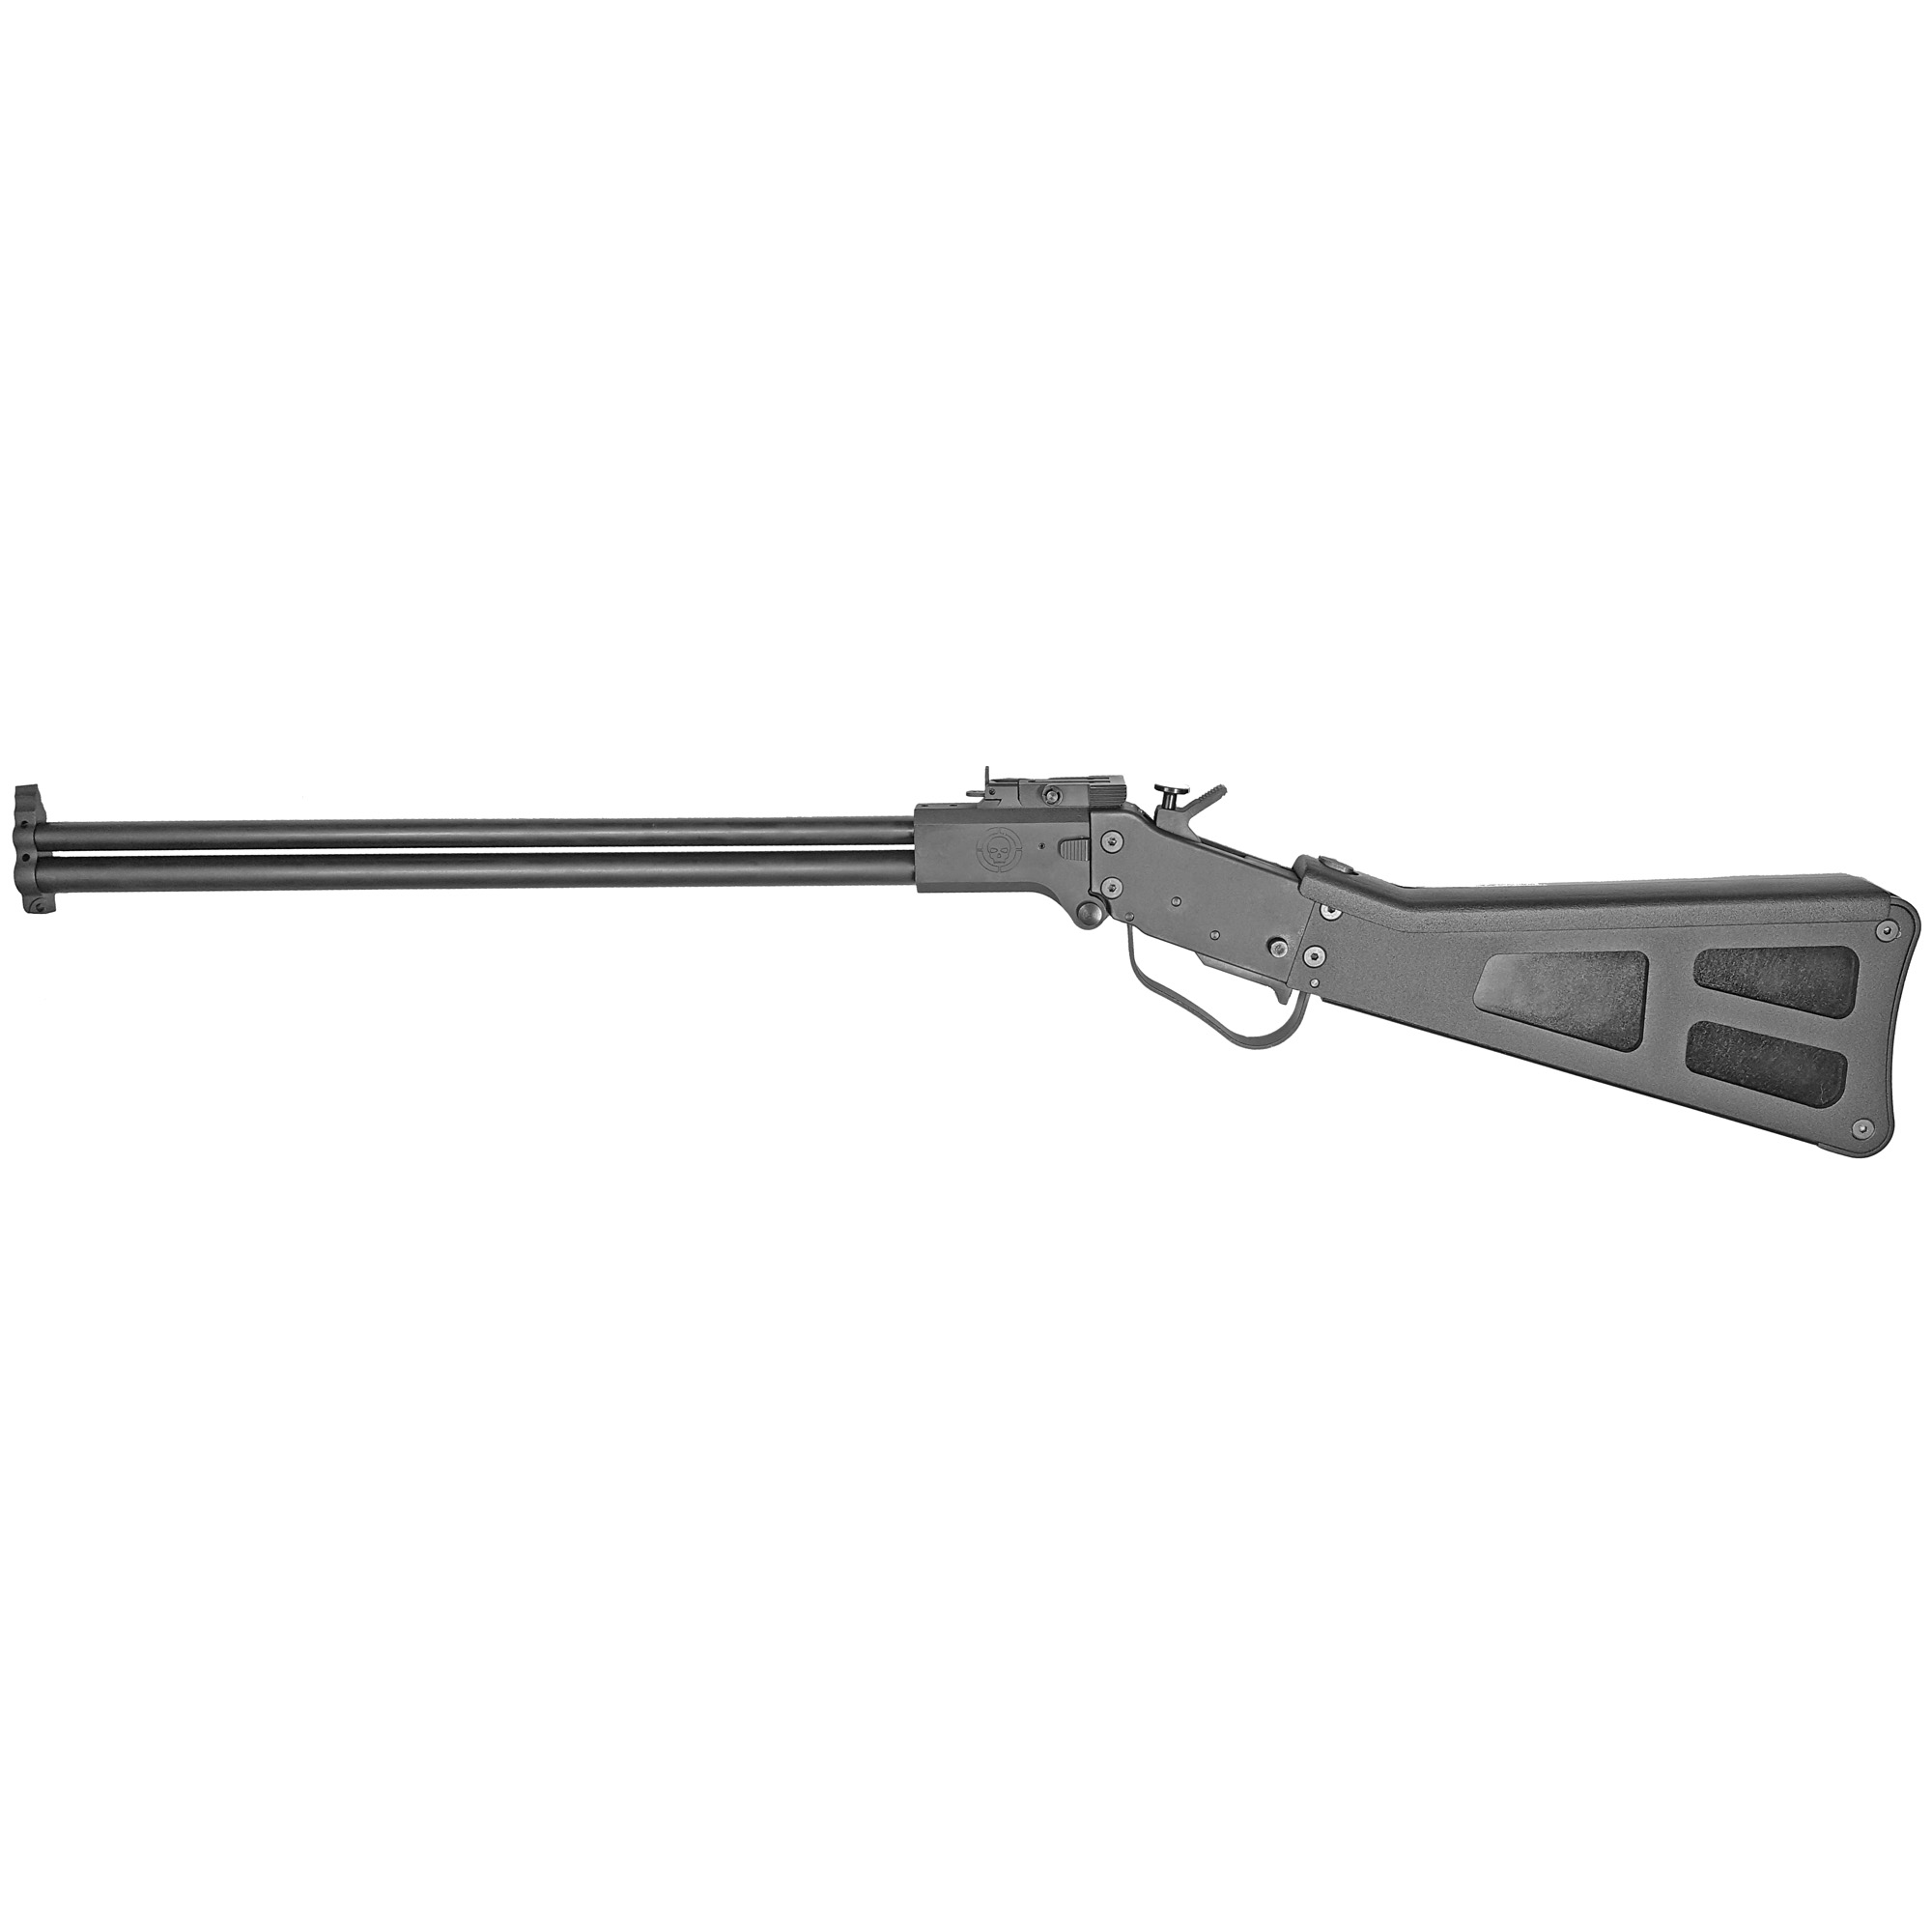 The M6 Takedown is an over/under combo (22LR/410Ga) made of all steel construction with a blued finish. It has adjustable sights and an AR-style takedown pin for quick breakdown.